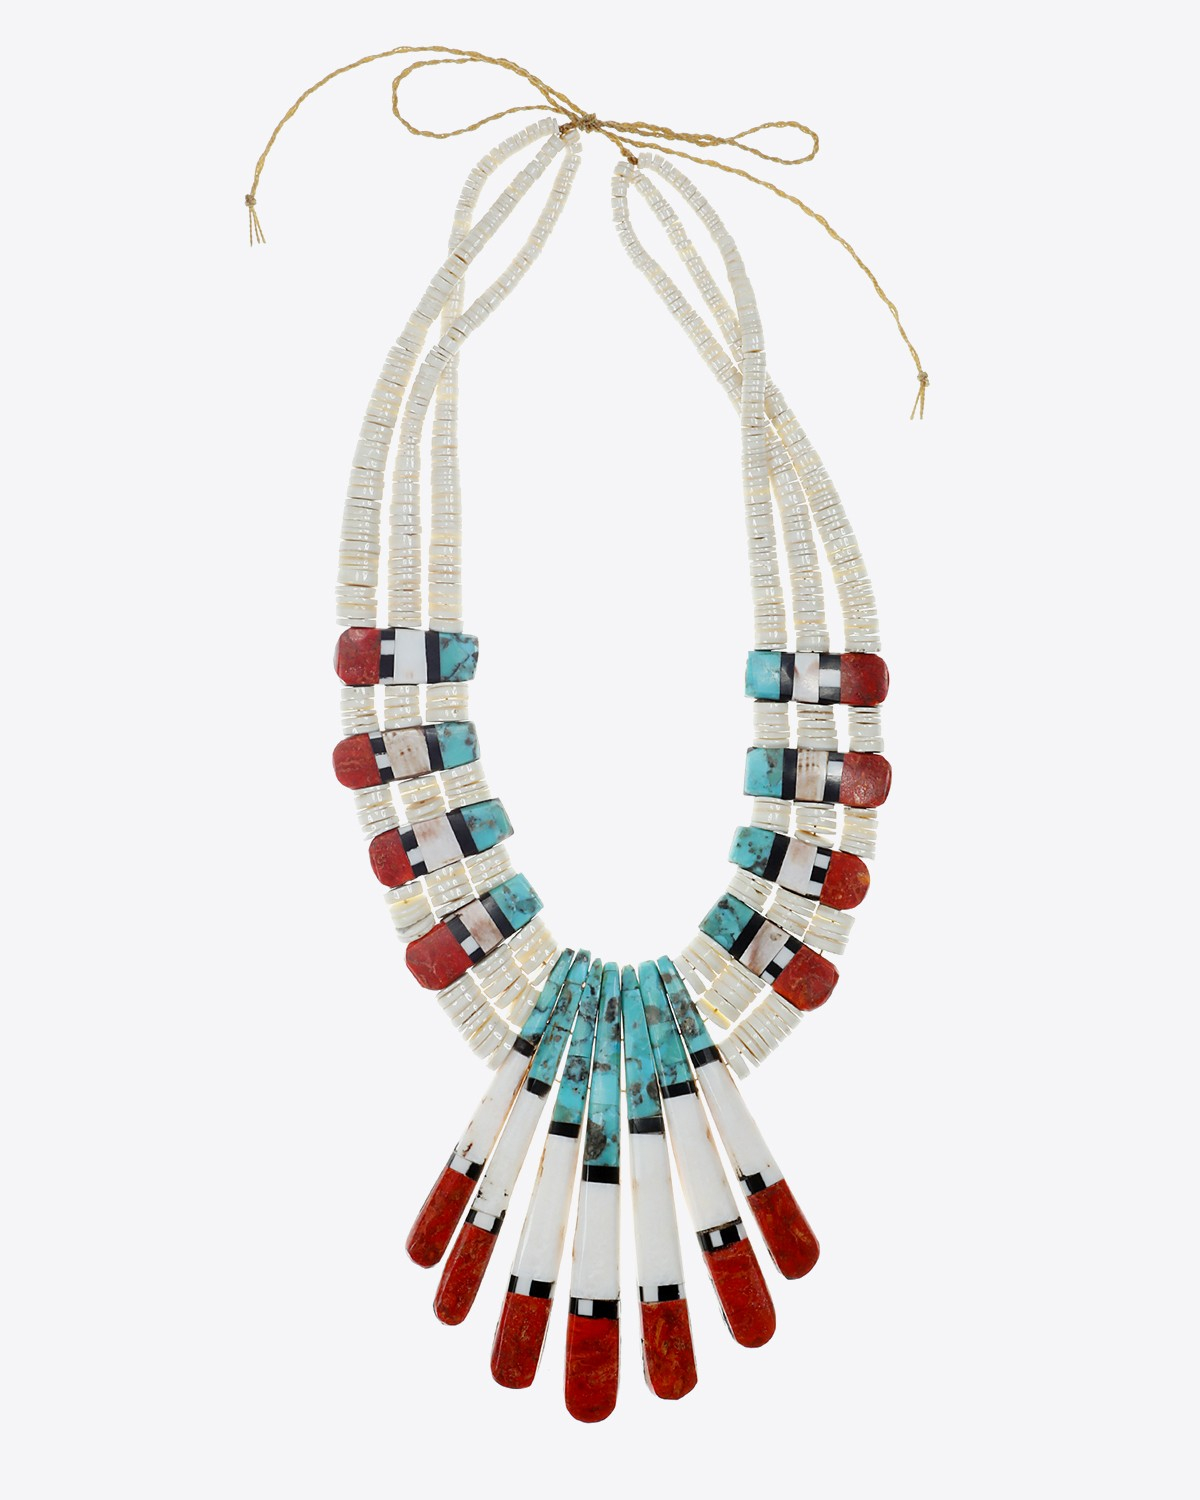 Harpo Collier Seven Fingers Turquoise Gorgonne et Coquillages